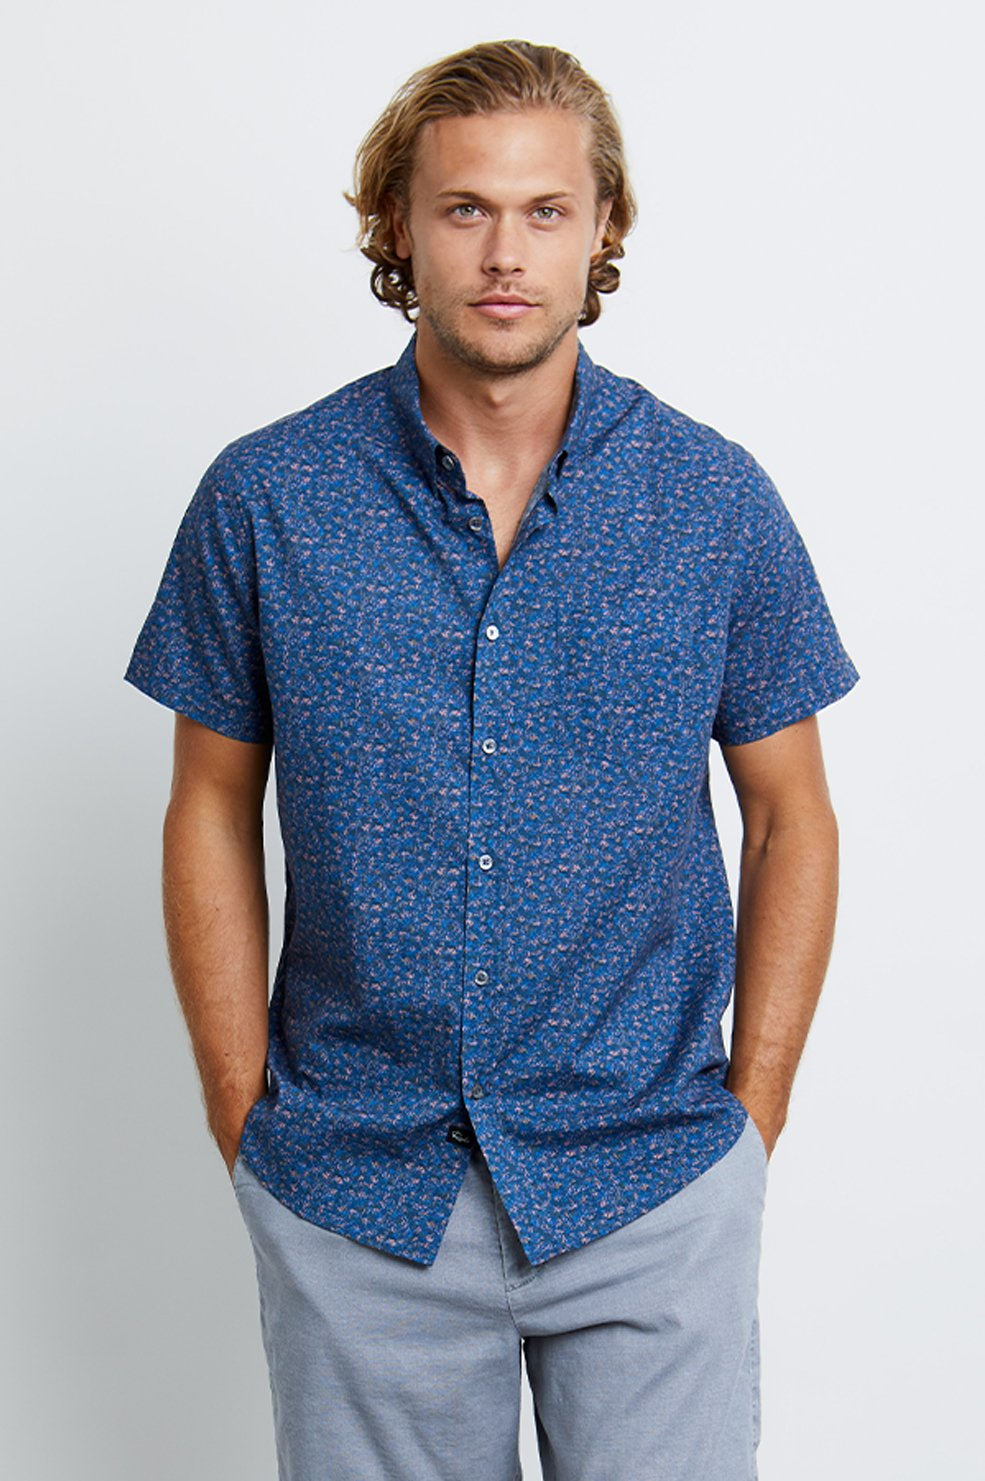 Rails MONACO Short Sleeve Buttondown / Petals 3D - nineNORTH